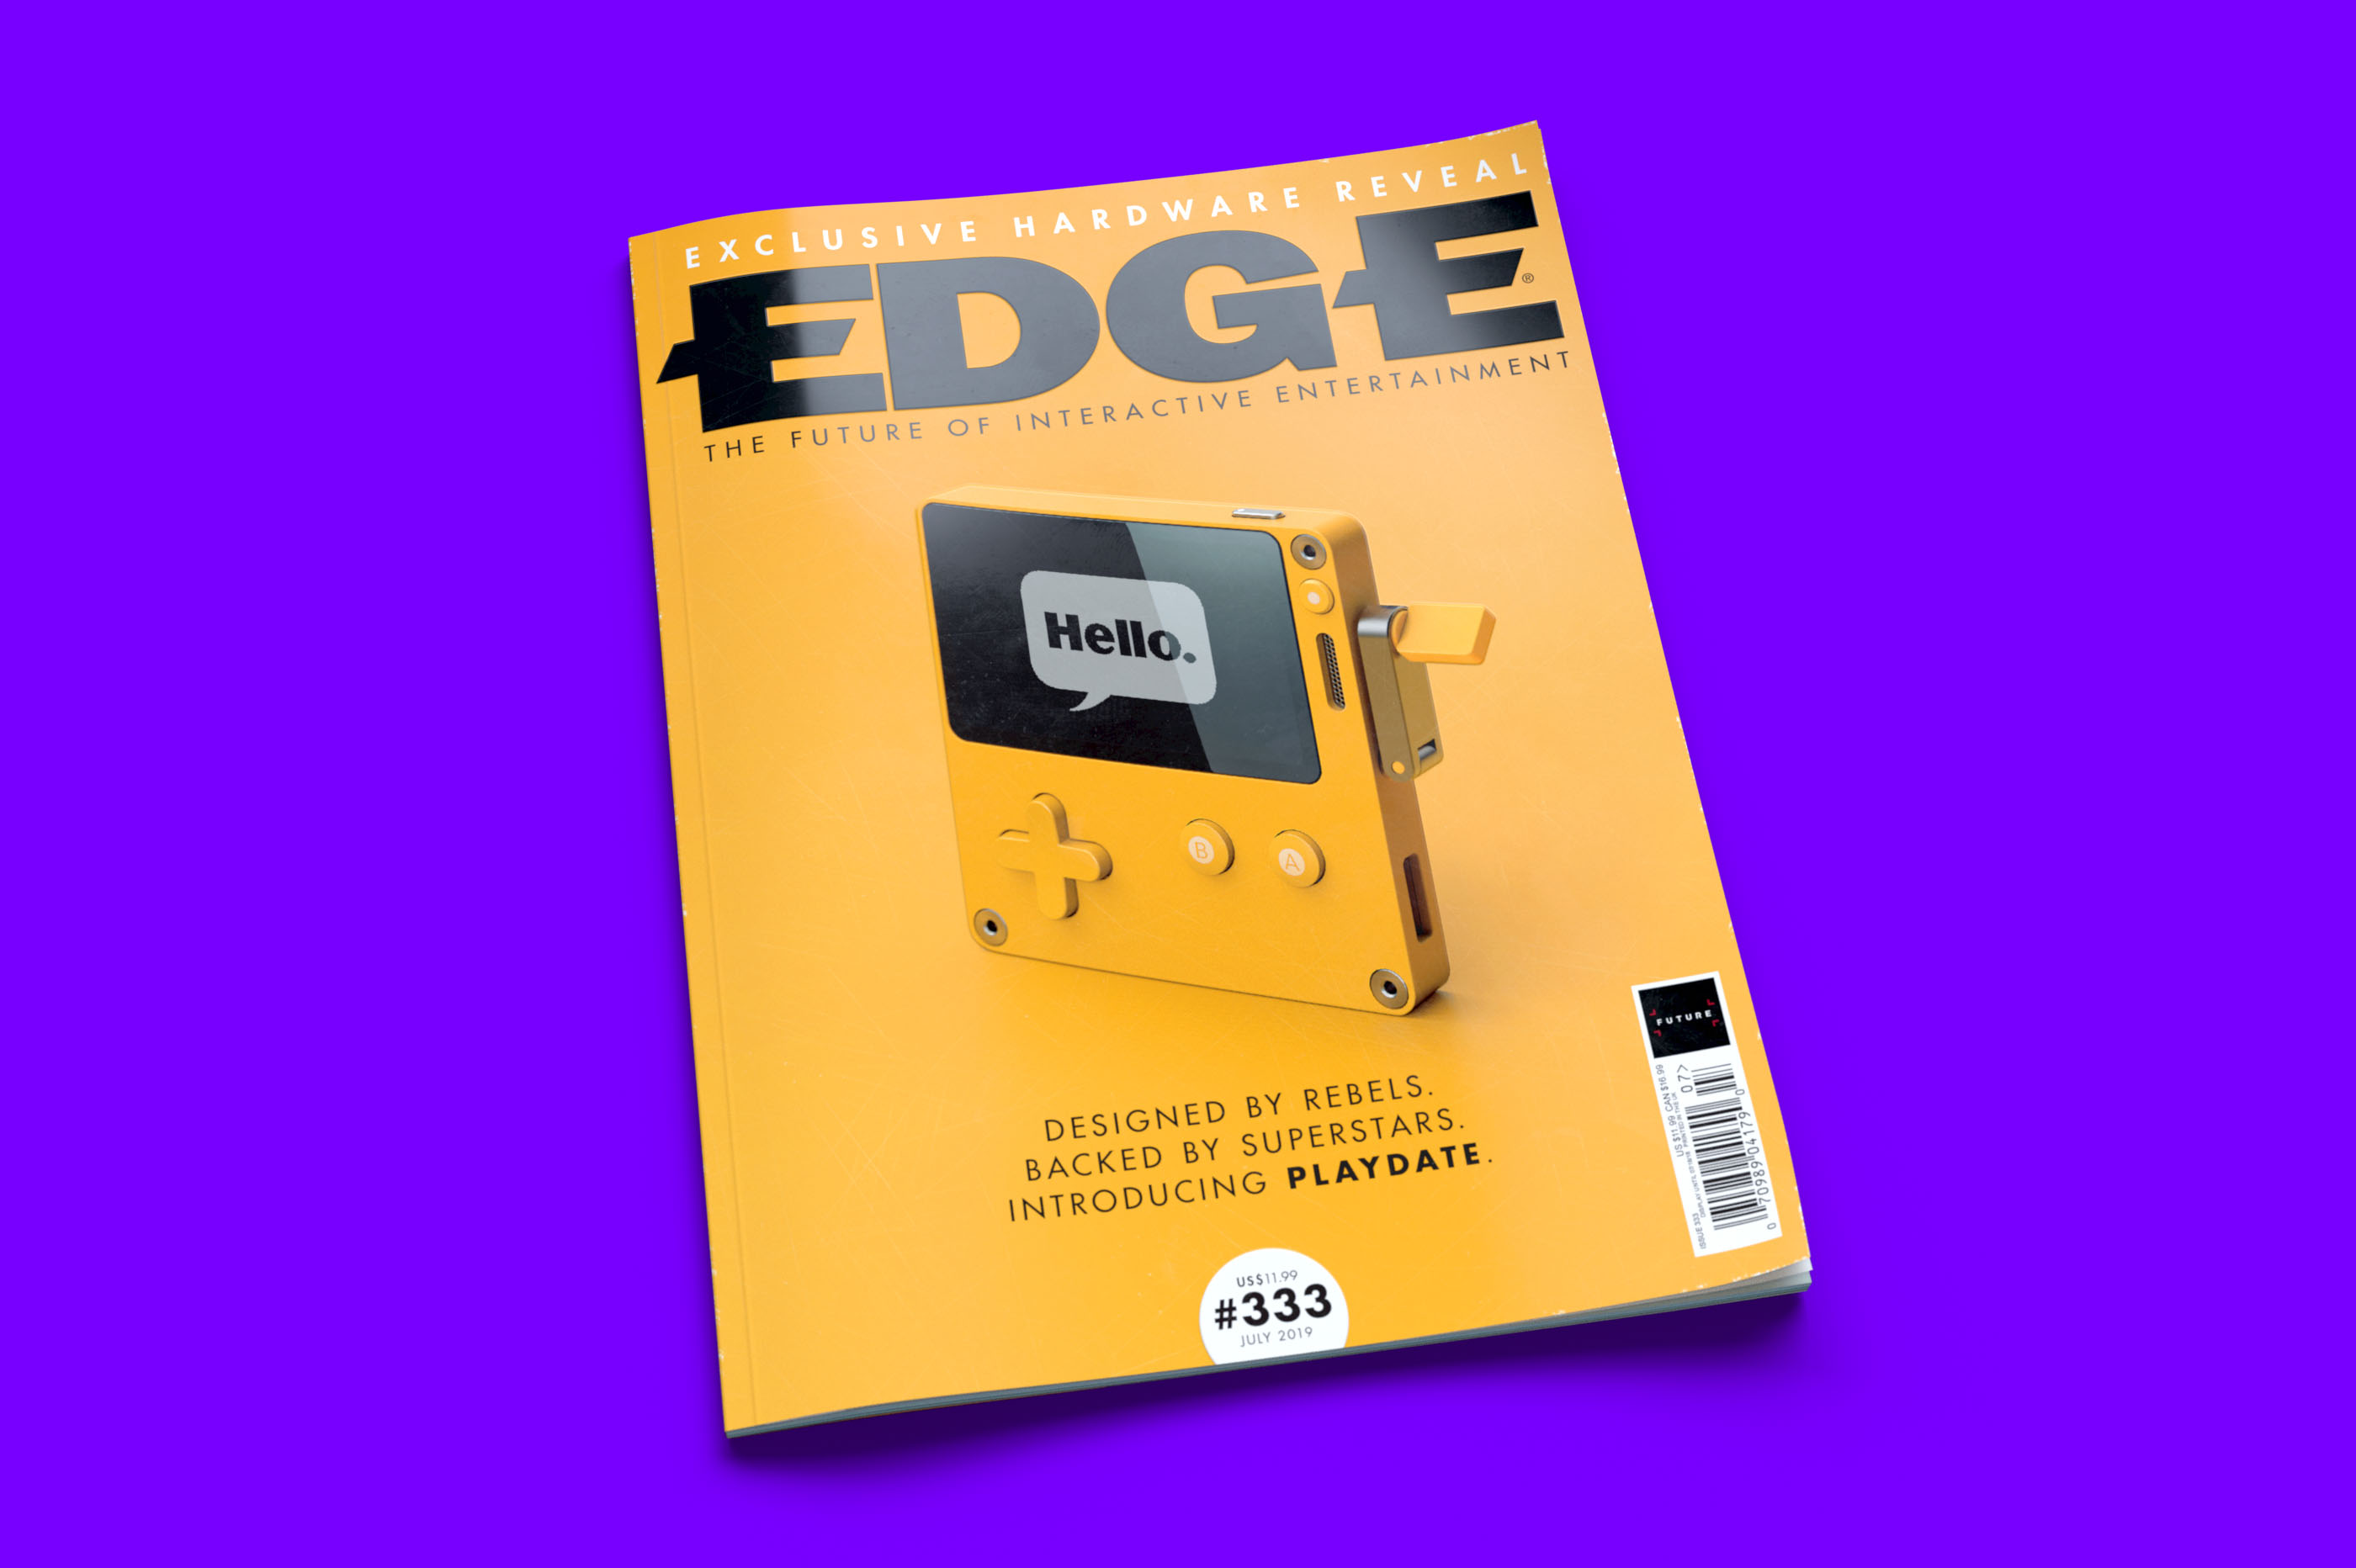 Issue 333 of Edge magazine will have more details about Playdate, including interviews with its creators.